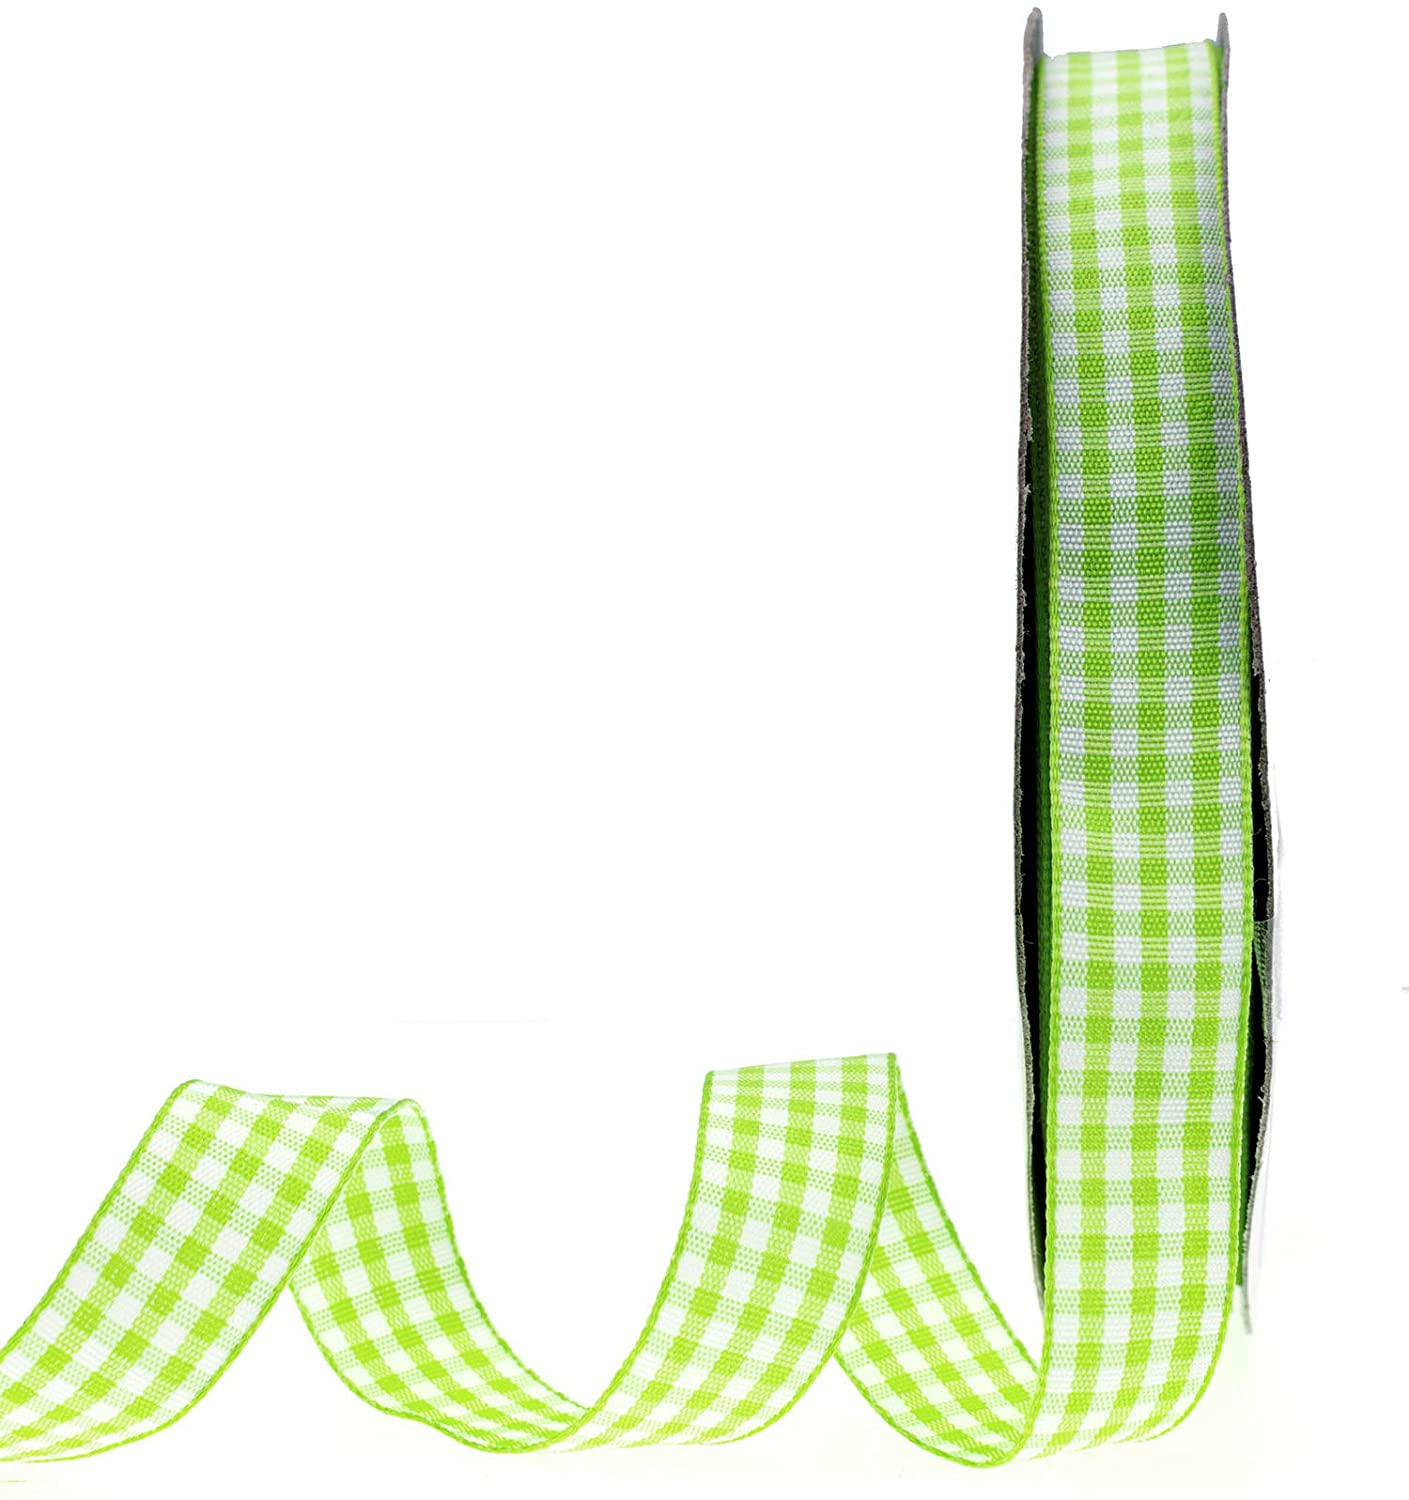 ATRibbons 50 Yards 5/8 Inch Wide Plaid Ribbon Polyester Gingham Ribbon for Gift Wrapping,Hair Bows and Craft (Light Green)